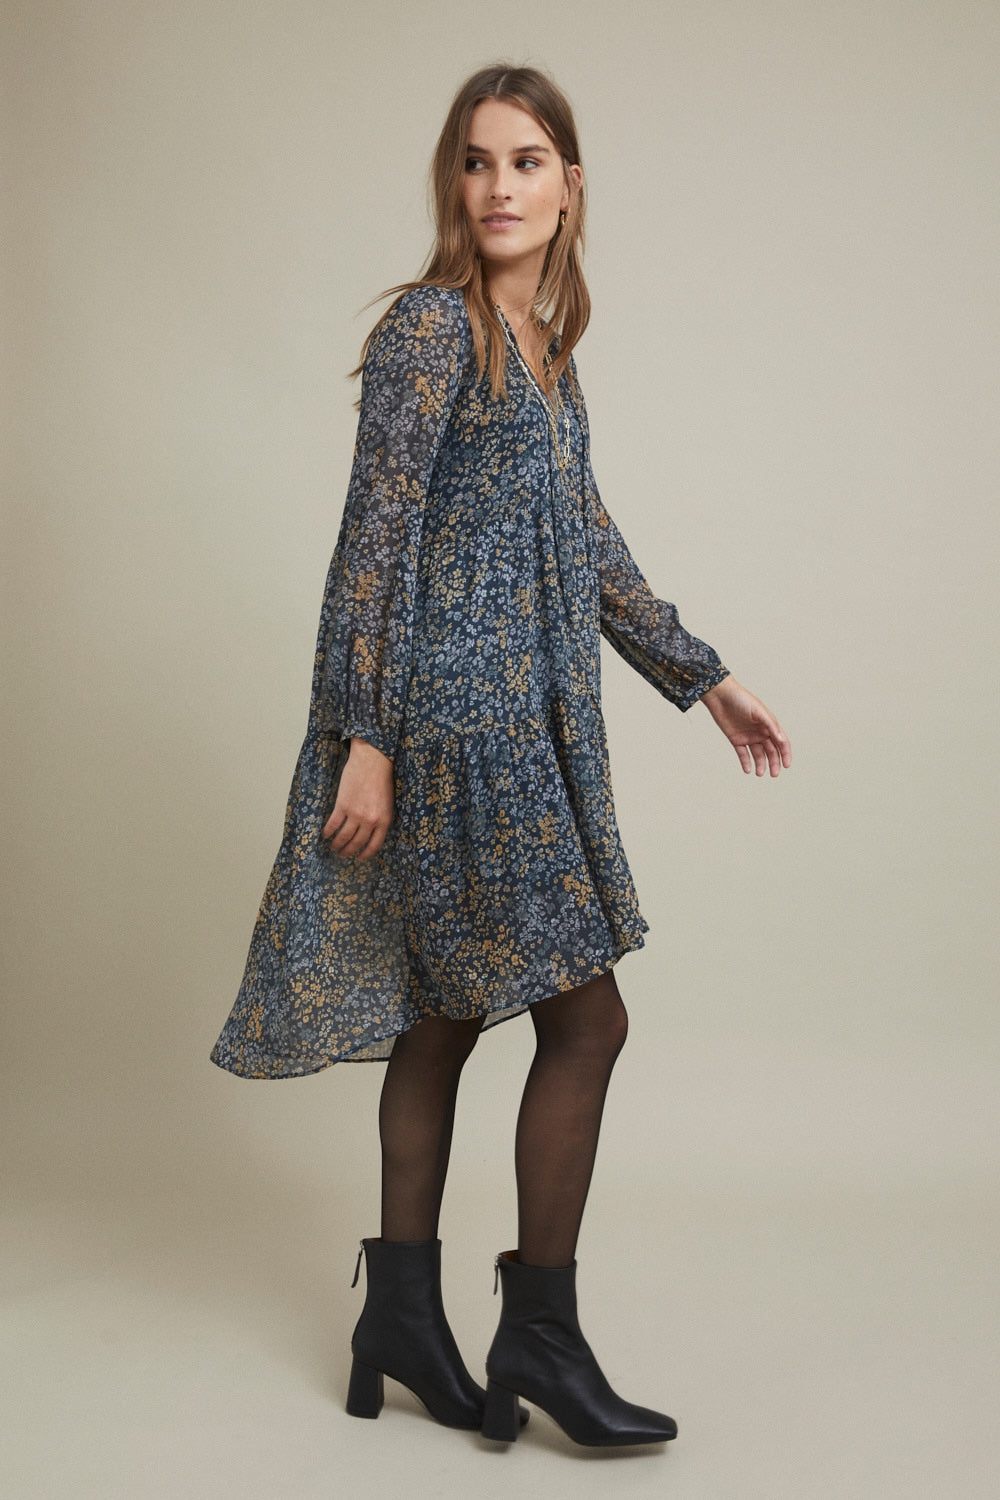 ese O ese Abby printed georgette midi dress in Liberty Blue